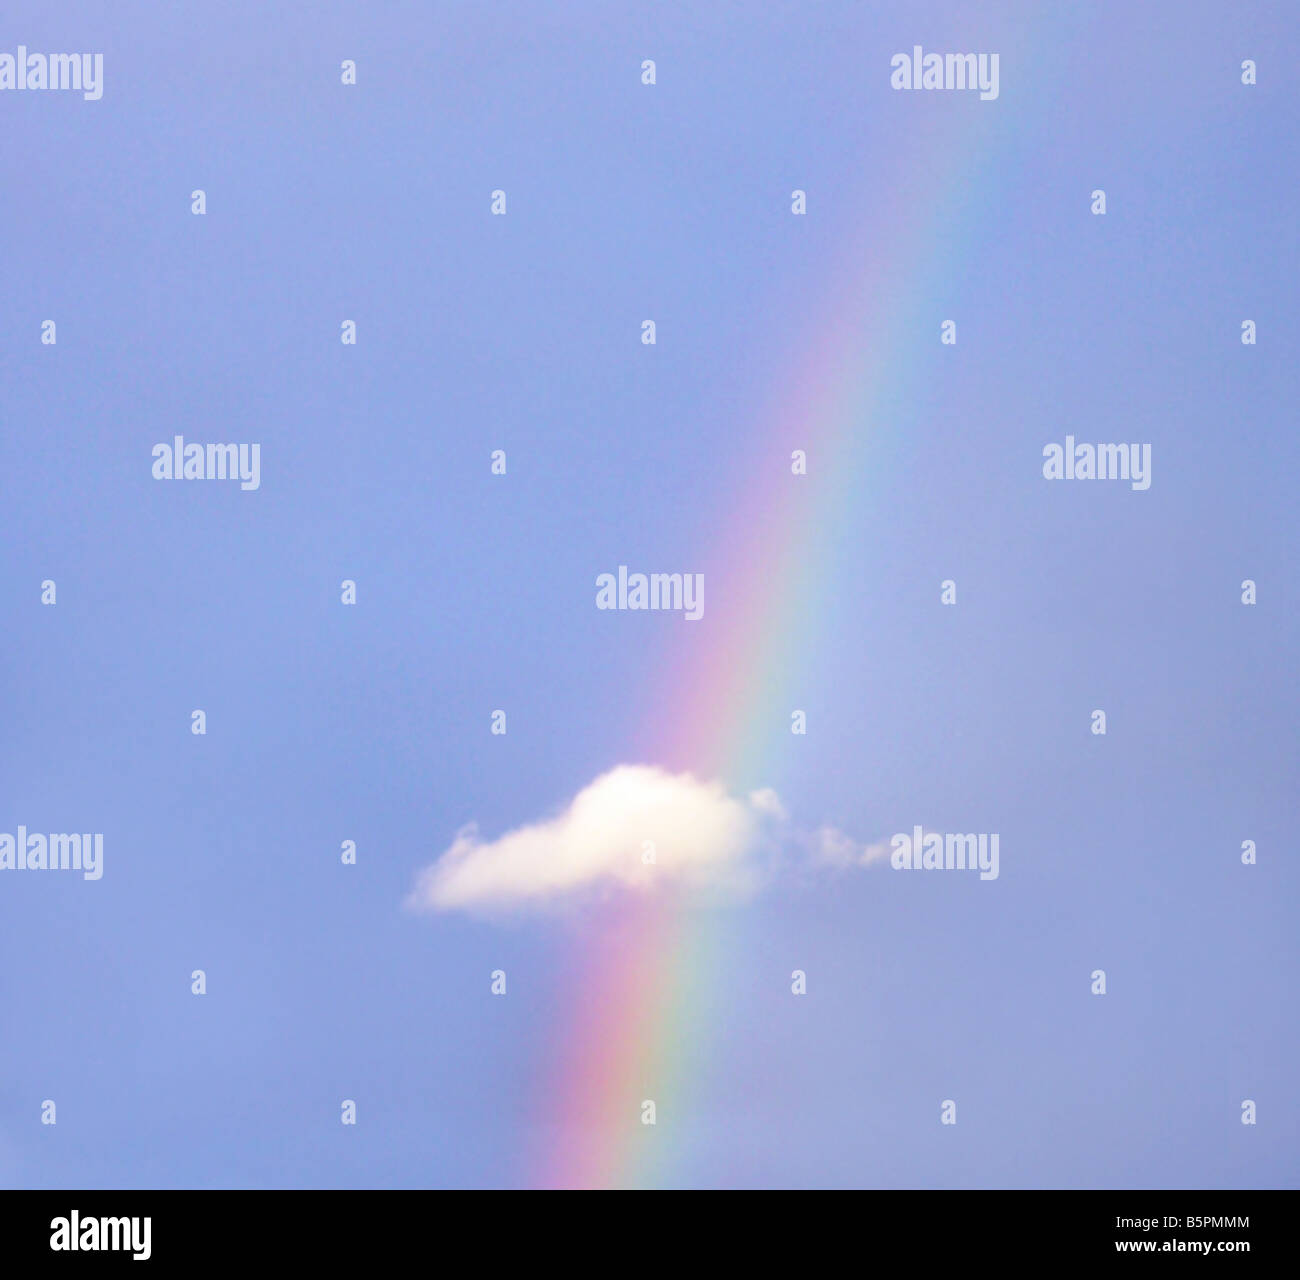 Rainbow with small cloud - Stock Image